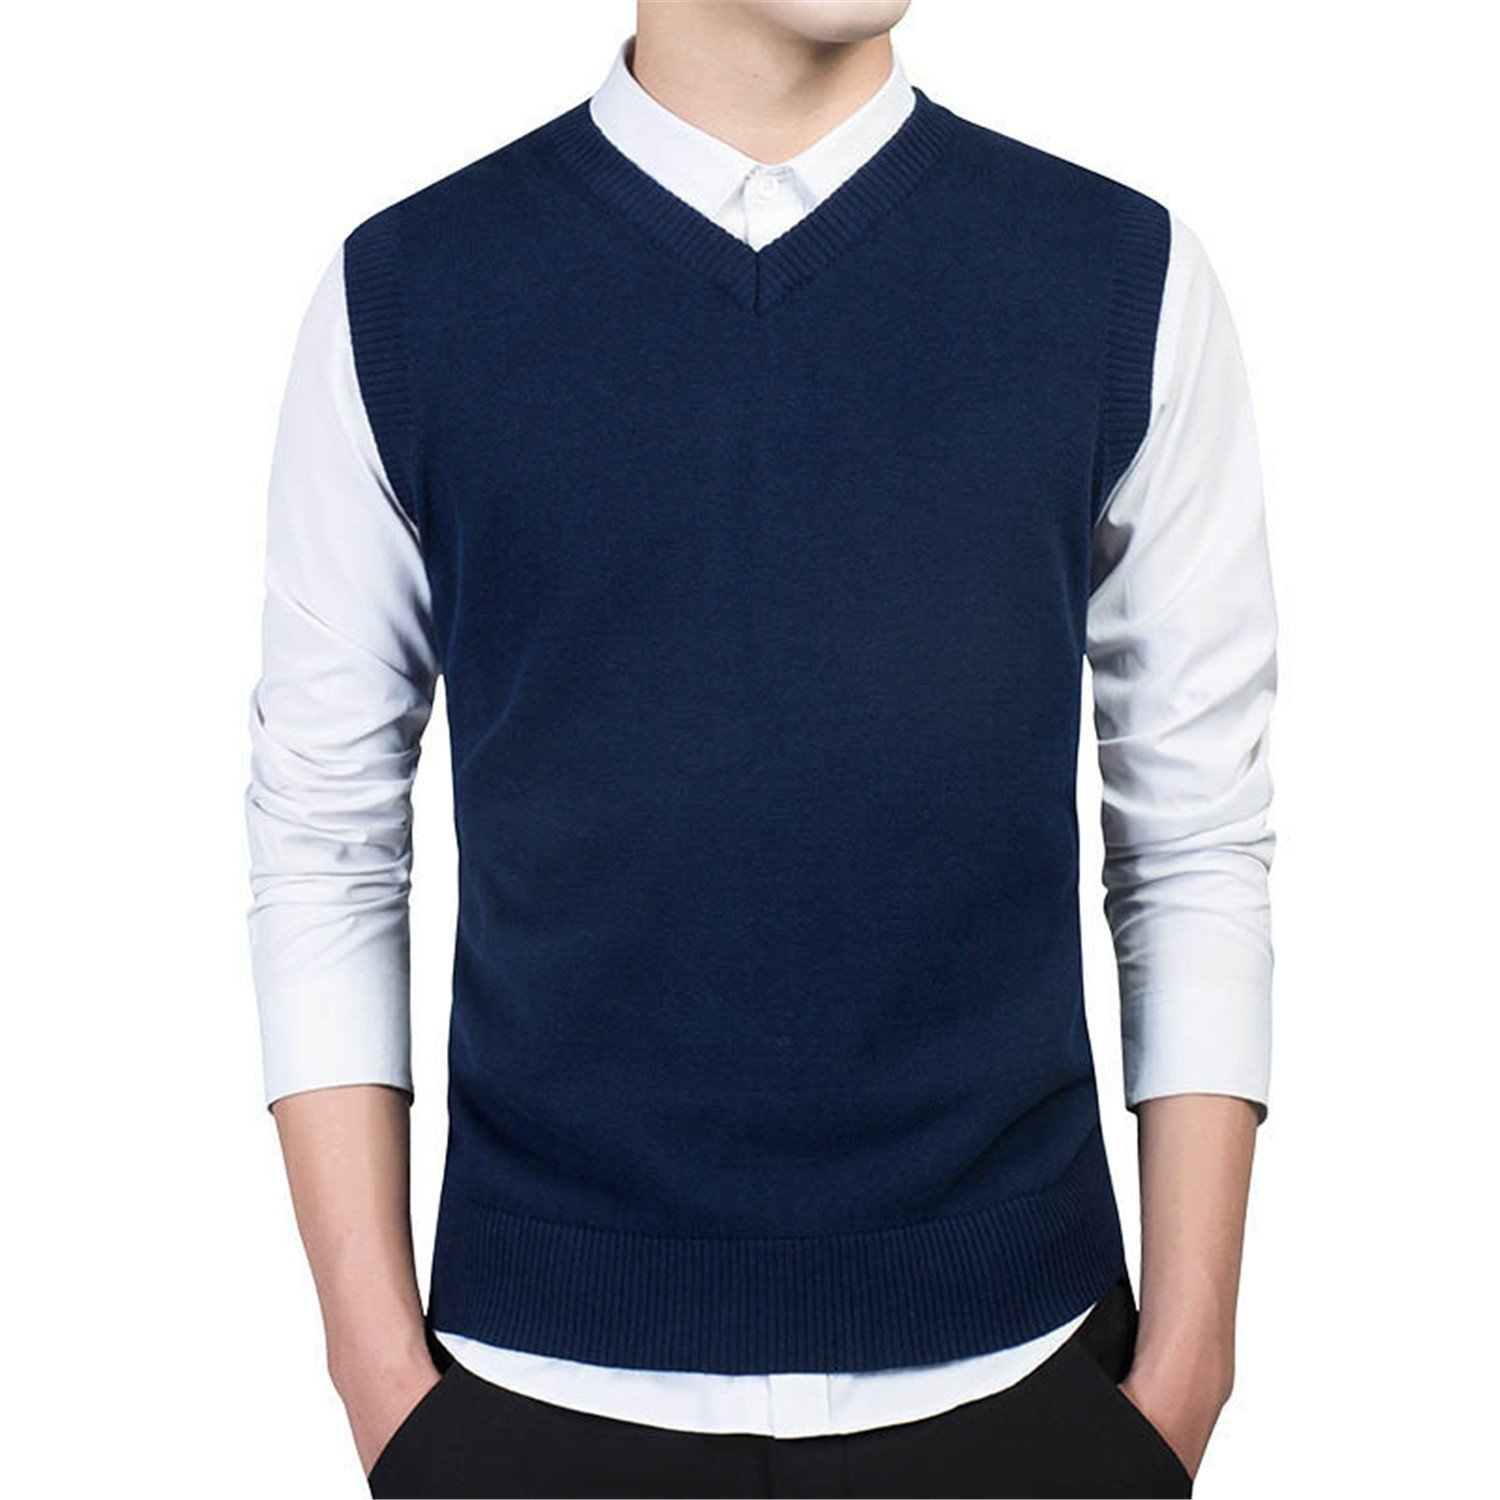 96c5792621 B dressy Handsome and Silm Pullover Sweater Men Autumn V Neck Slim Vest  Sweaters Sleeveless Men s Warm Sweater Cotton Casual M-3XL Light Grey  7789XXX-Large ...